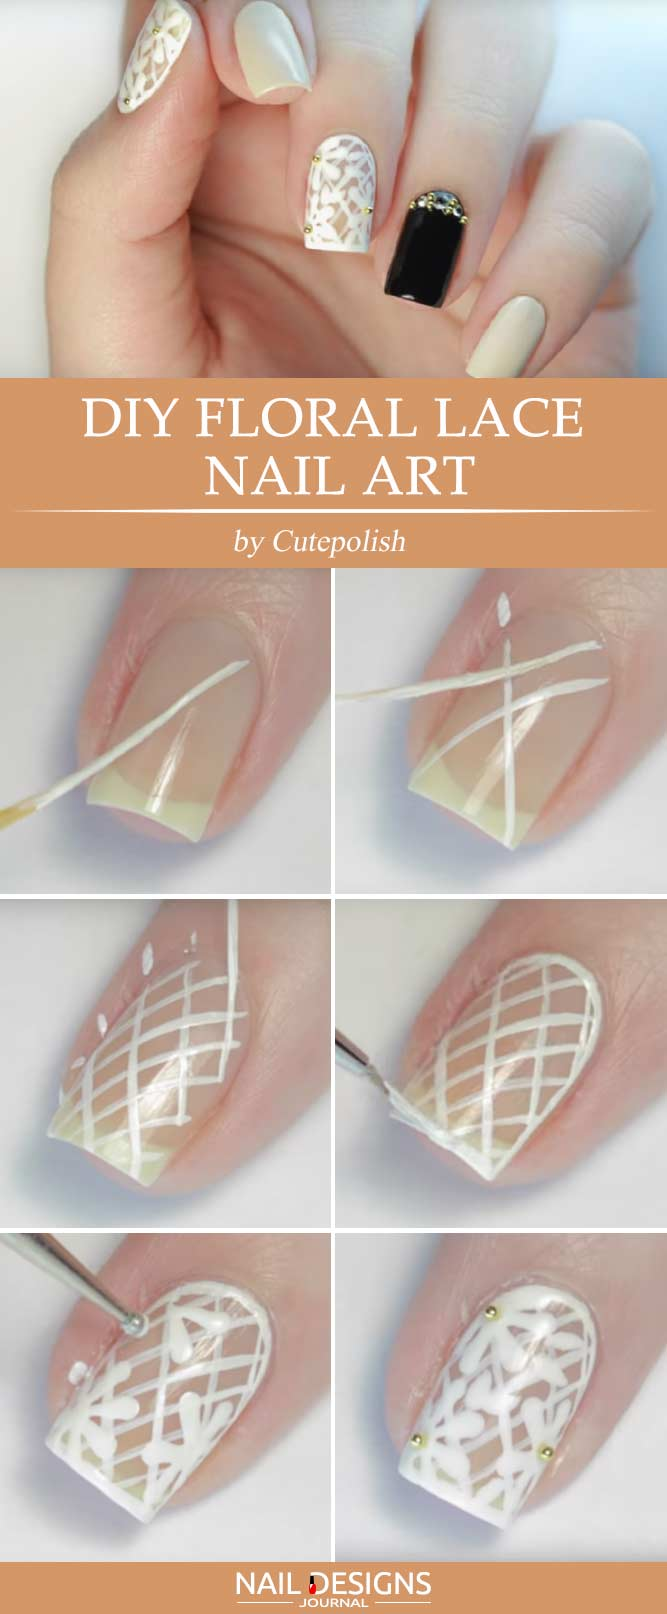 Tutorial How To Do Nail Designs With Floral Lace For Sophisticated Ladies